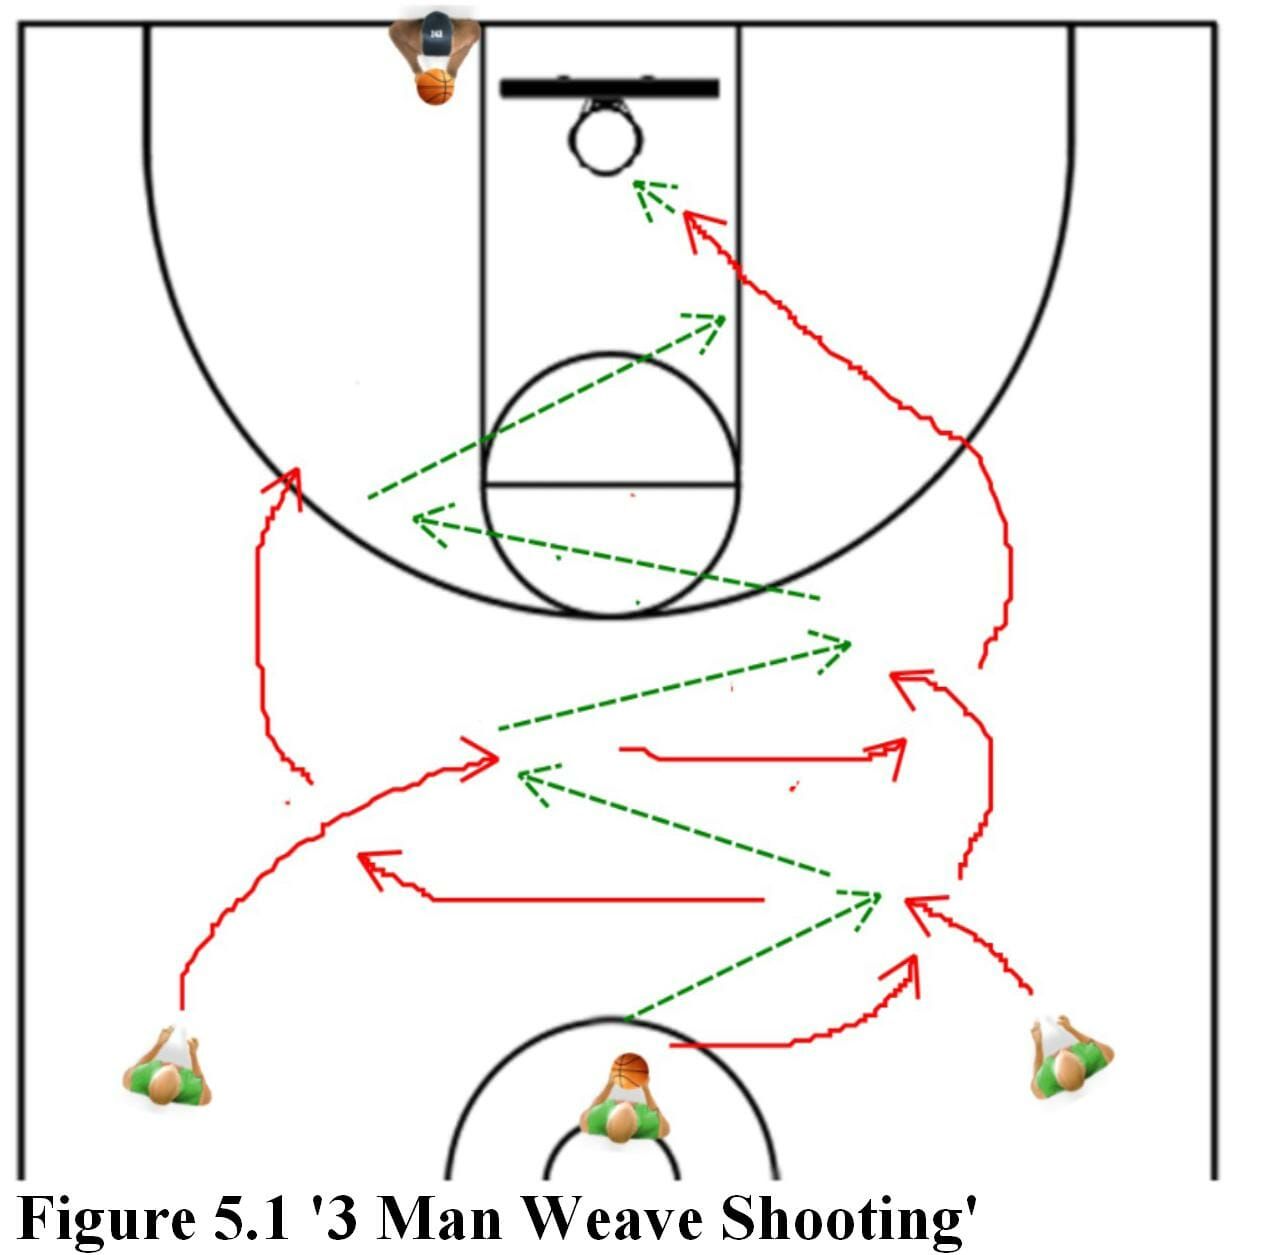 Youth Basketball Drills: 2 Ways to Get Your Team Ready for Game Time